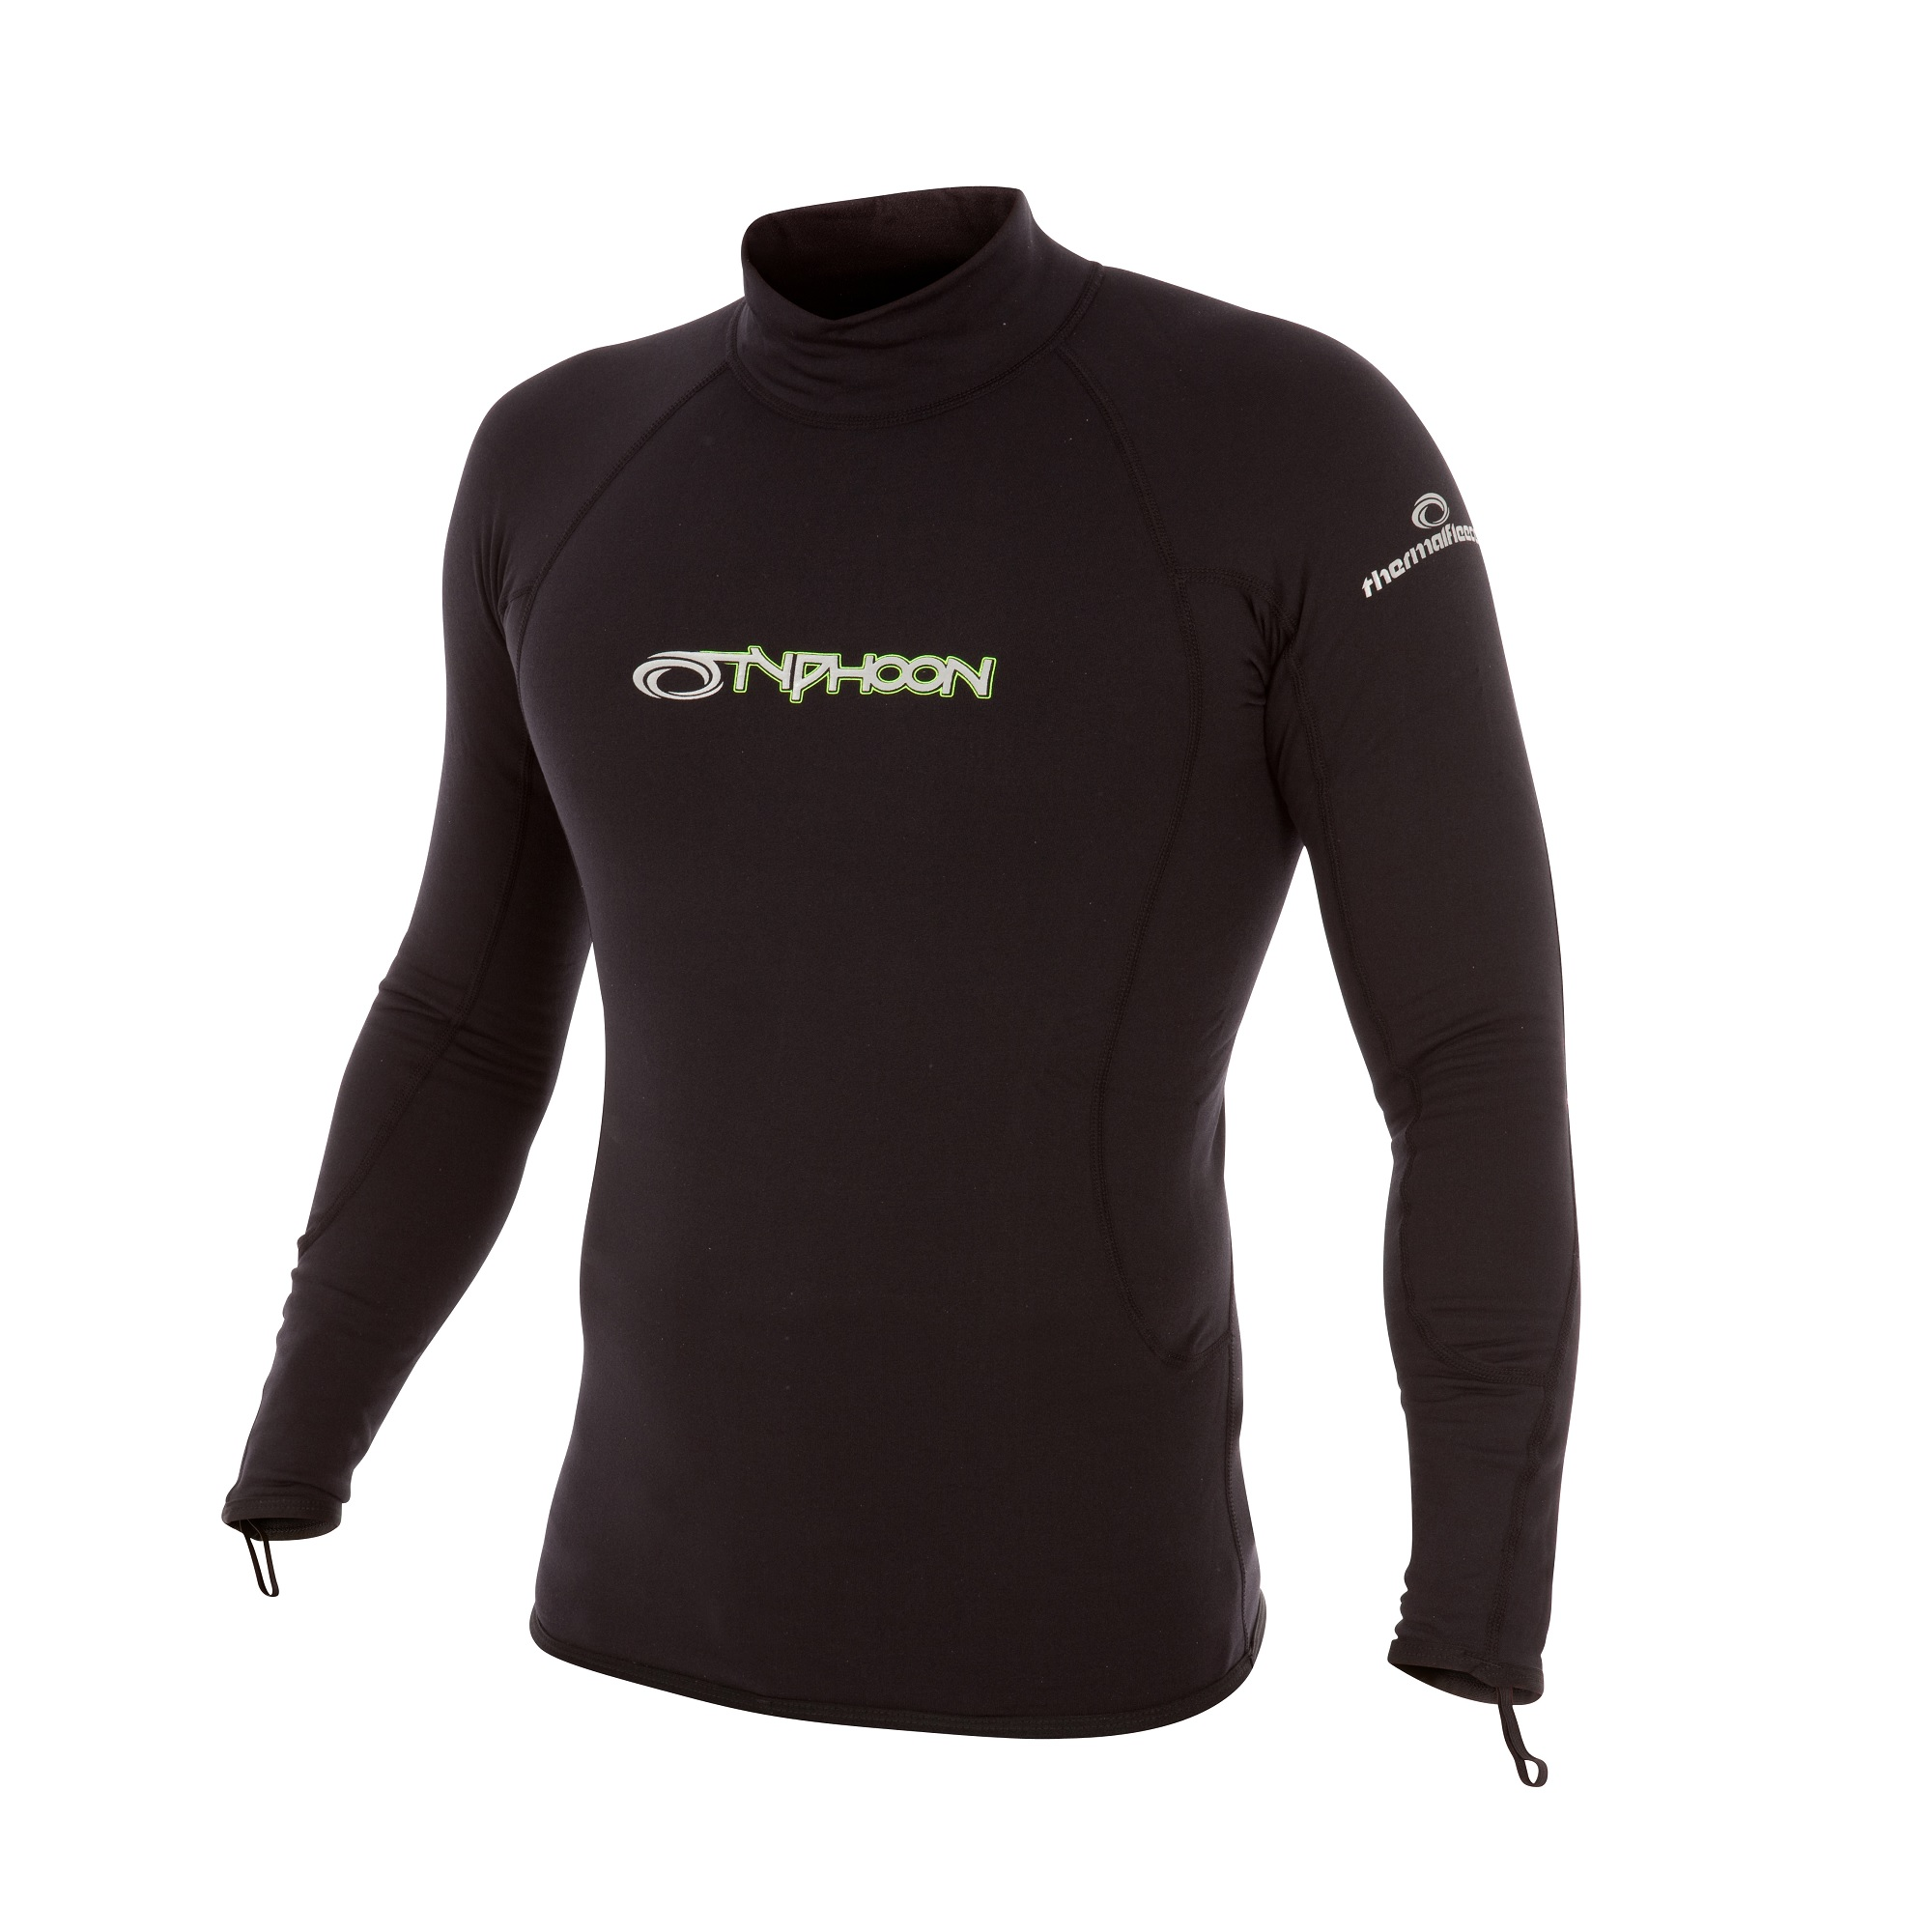 THERMAFLEECE Long Sleeve rash vest by Typhoon